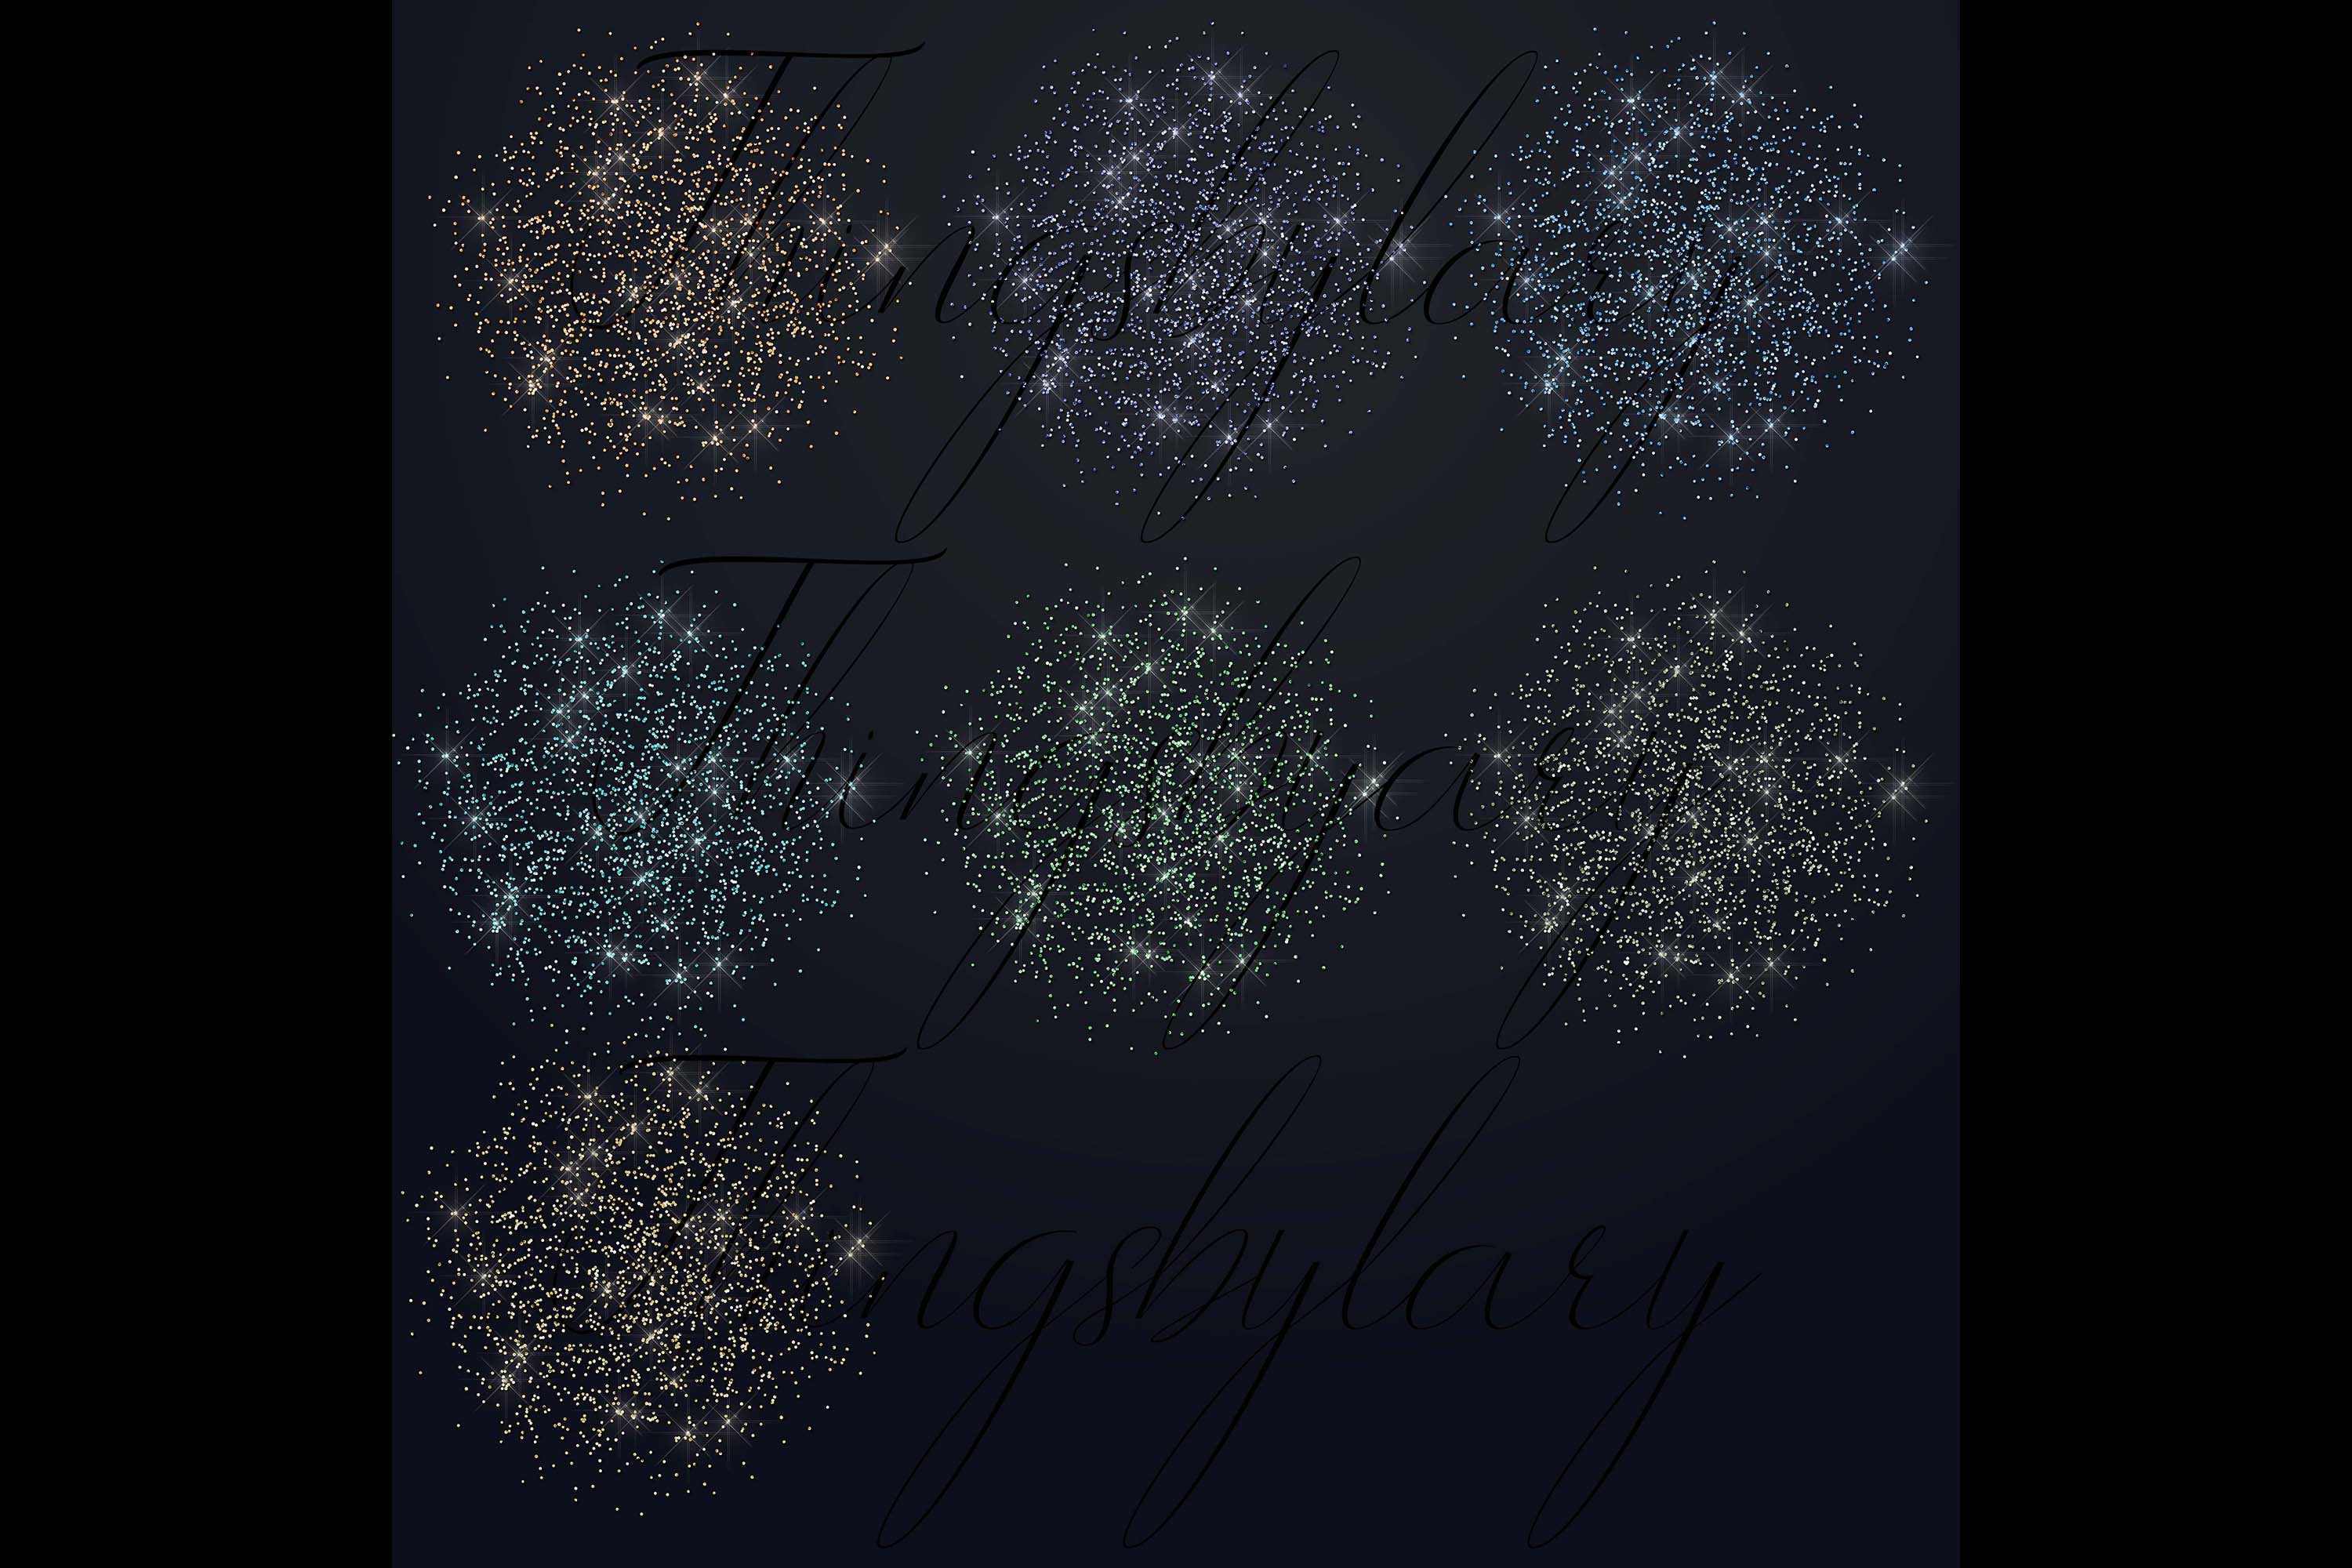 32 Glitter Particles Overlay Images Glitter Dust Confetti example image 7